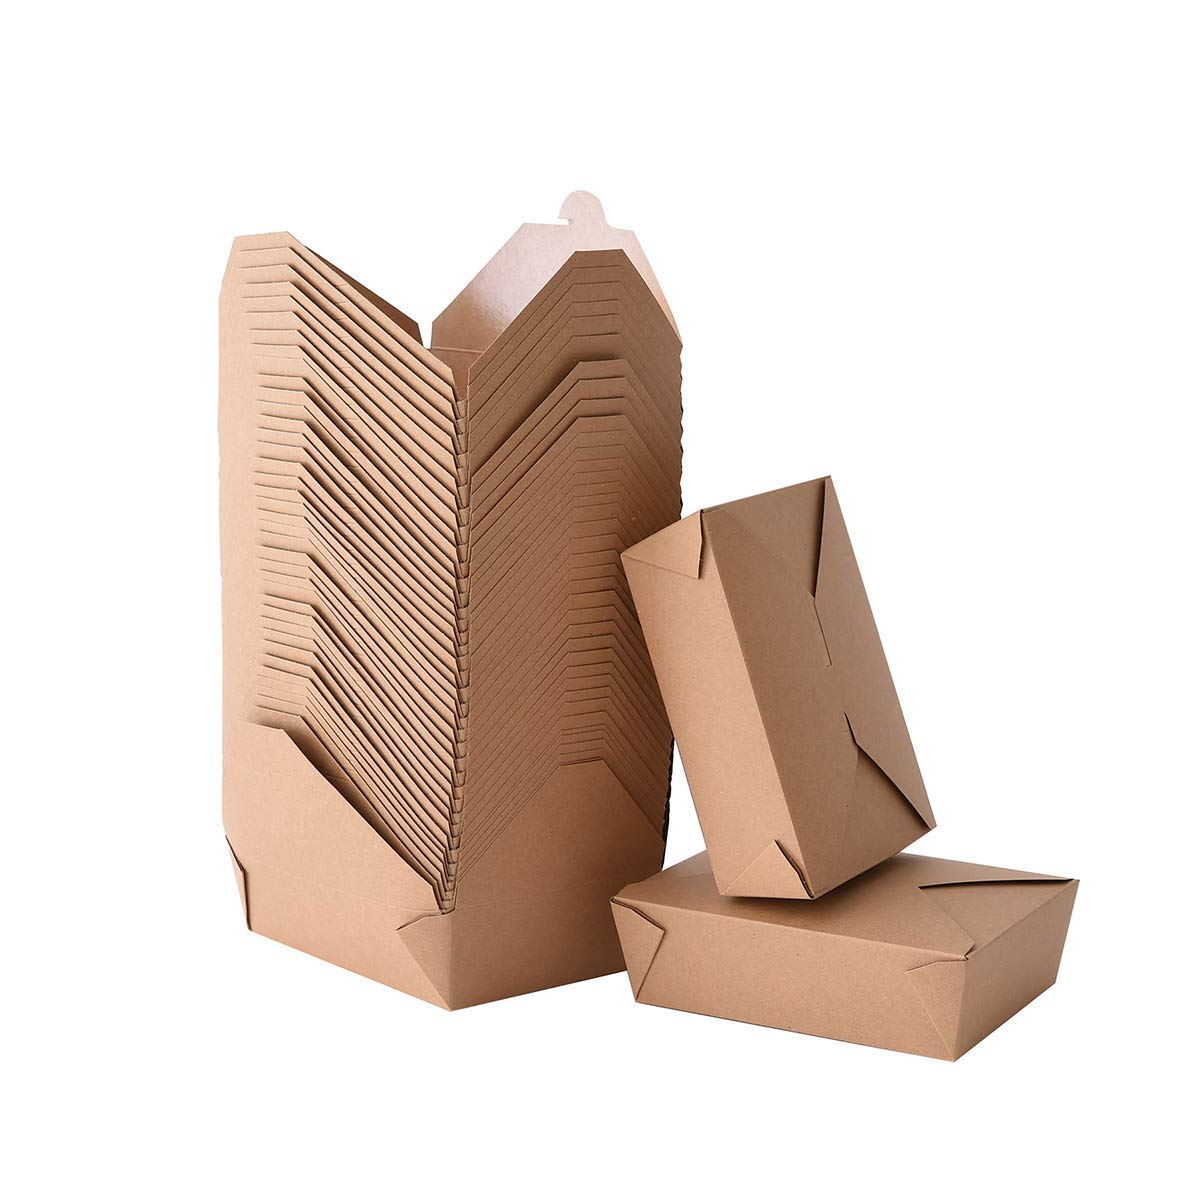 Take Out Boxes 71 Oz Chinese Take Out Containers 40 Pack Microwaveable Folding Natural Kraft Food Boxes for Food Take Out Boxes Ideal Leak and Grease Resistant Food Containers for Restaurants,Parties